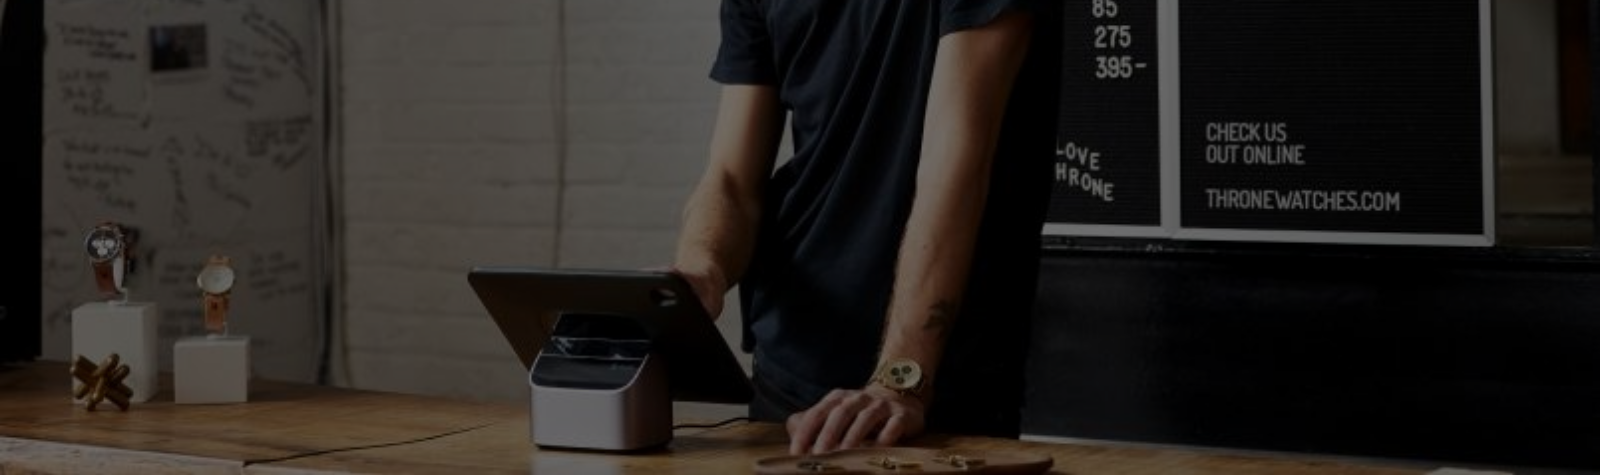 Shopify POS Explained: Features, Pricing & How to Get Started